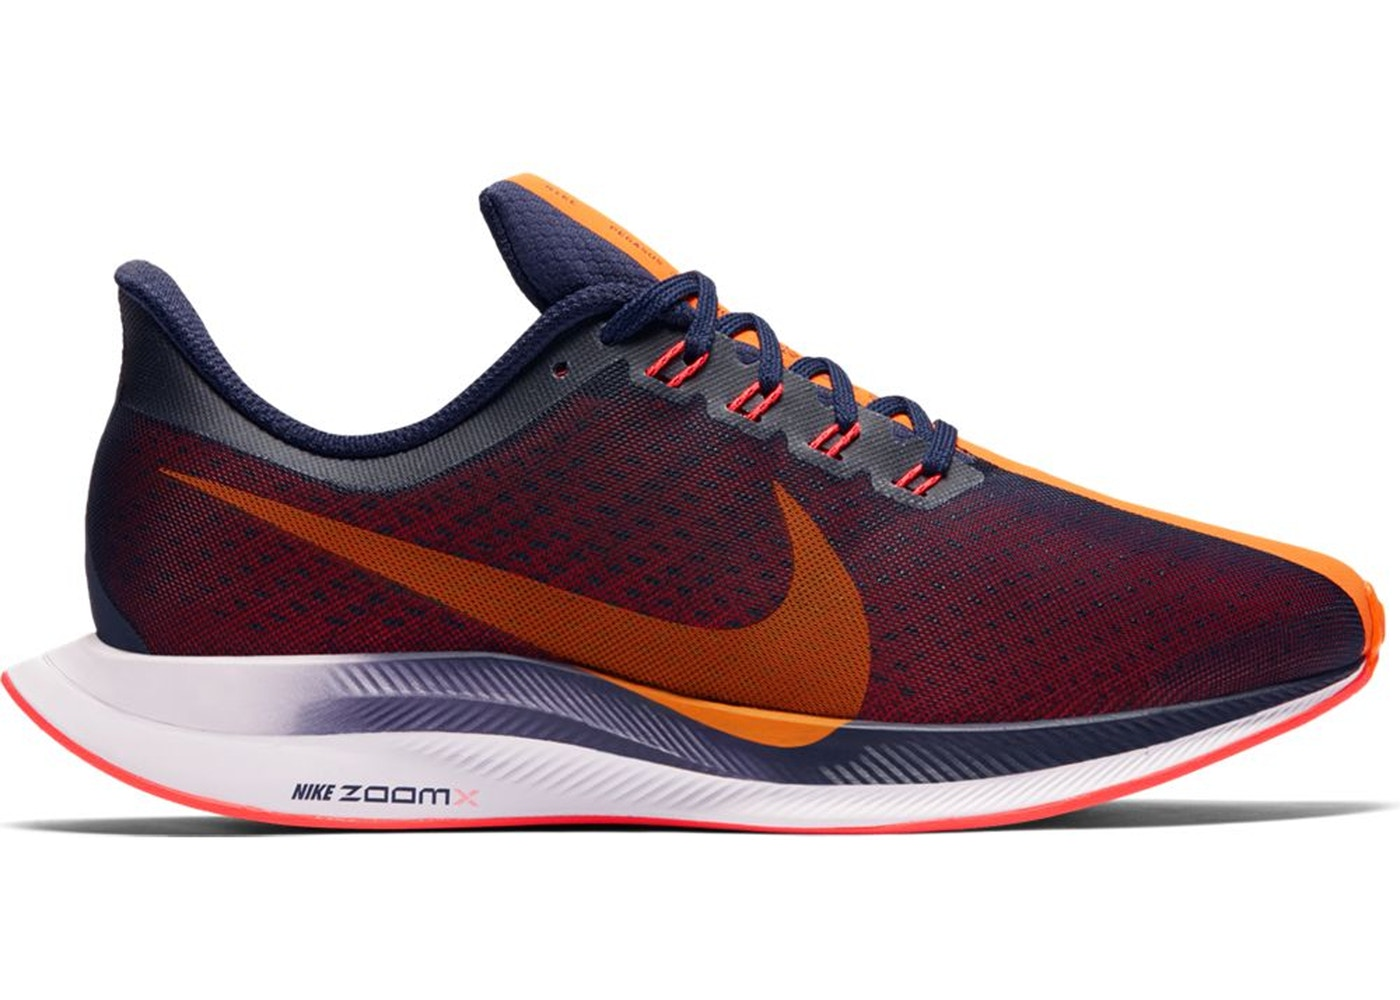 96dd497beeea1 Sell. or Ask. Size  11.5W. View All Bids. Nike Zoom Pegasus 35 Turbo  Blackened Blue Orange Peel ...